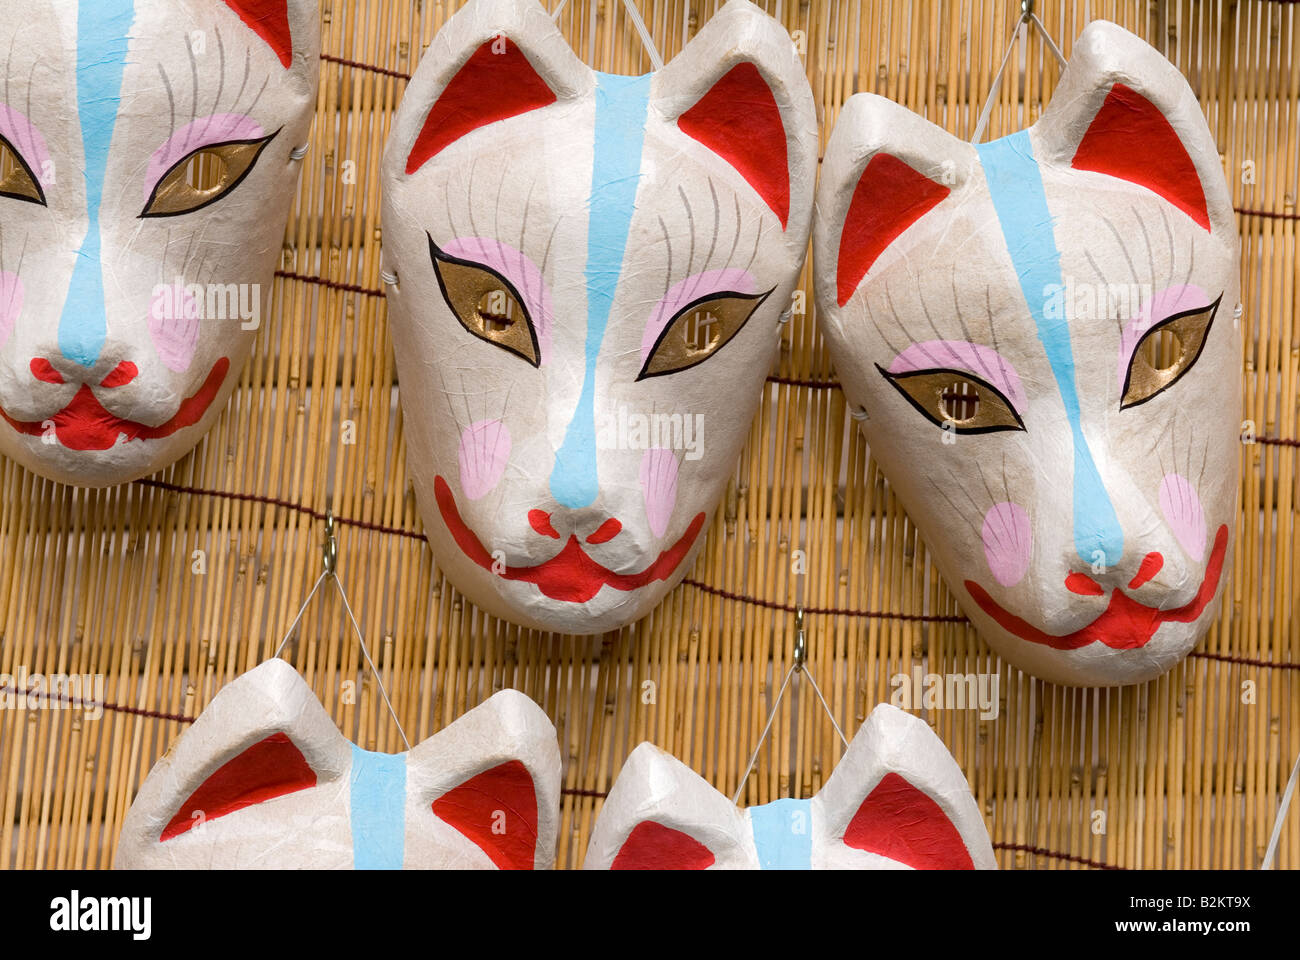 Baby inari fox for sale - Paper Mache Masks Of The Kitsune Or Fox For Sale At A Local Festival